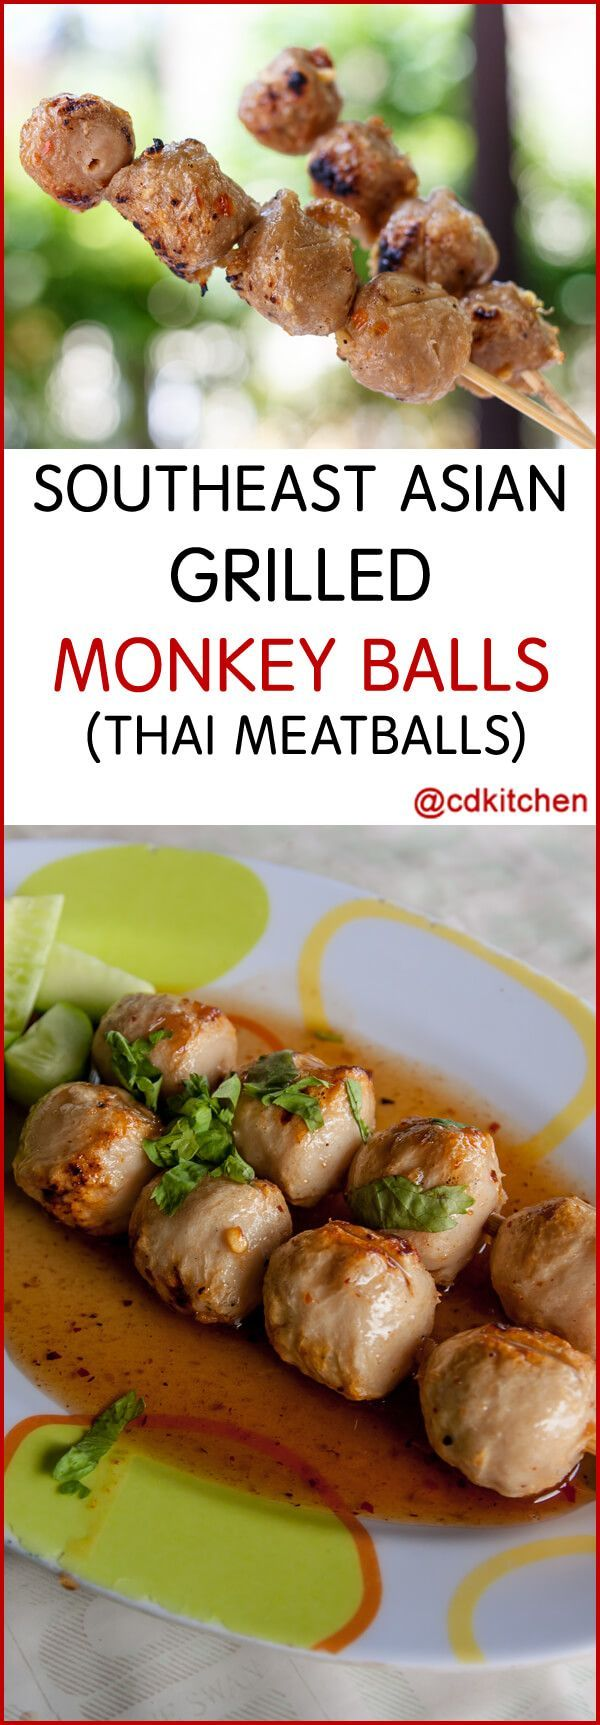 Southeast Asian Grilled Monkey Balls - Recipe is made with ground pork, crushed red pepper, ground turkey or chicken, fish sauce, Maggi sauce, onion, garlic, ginger, black pepper, panko | CDKitchen.com